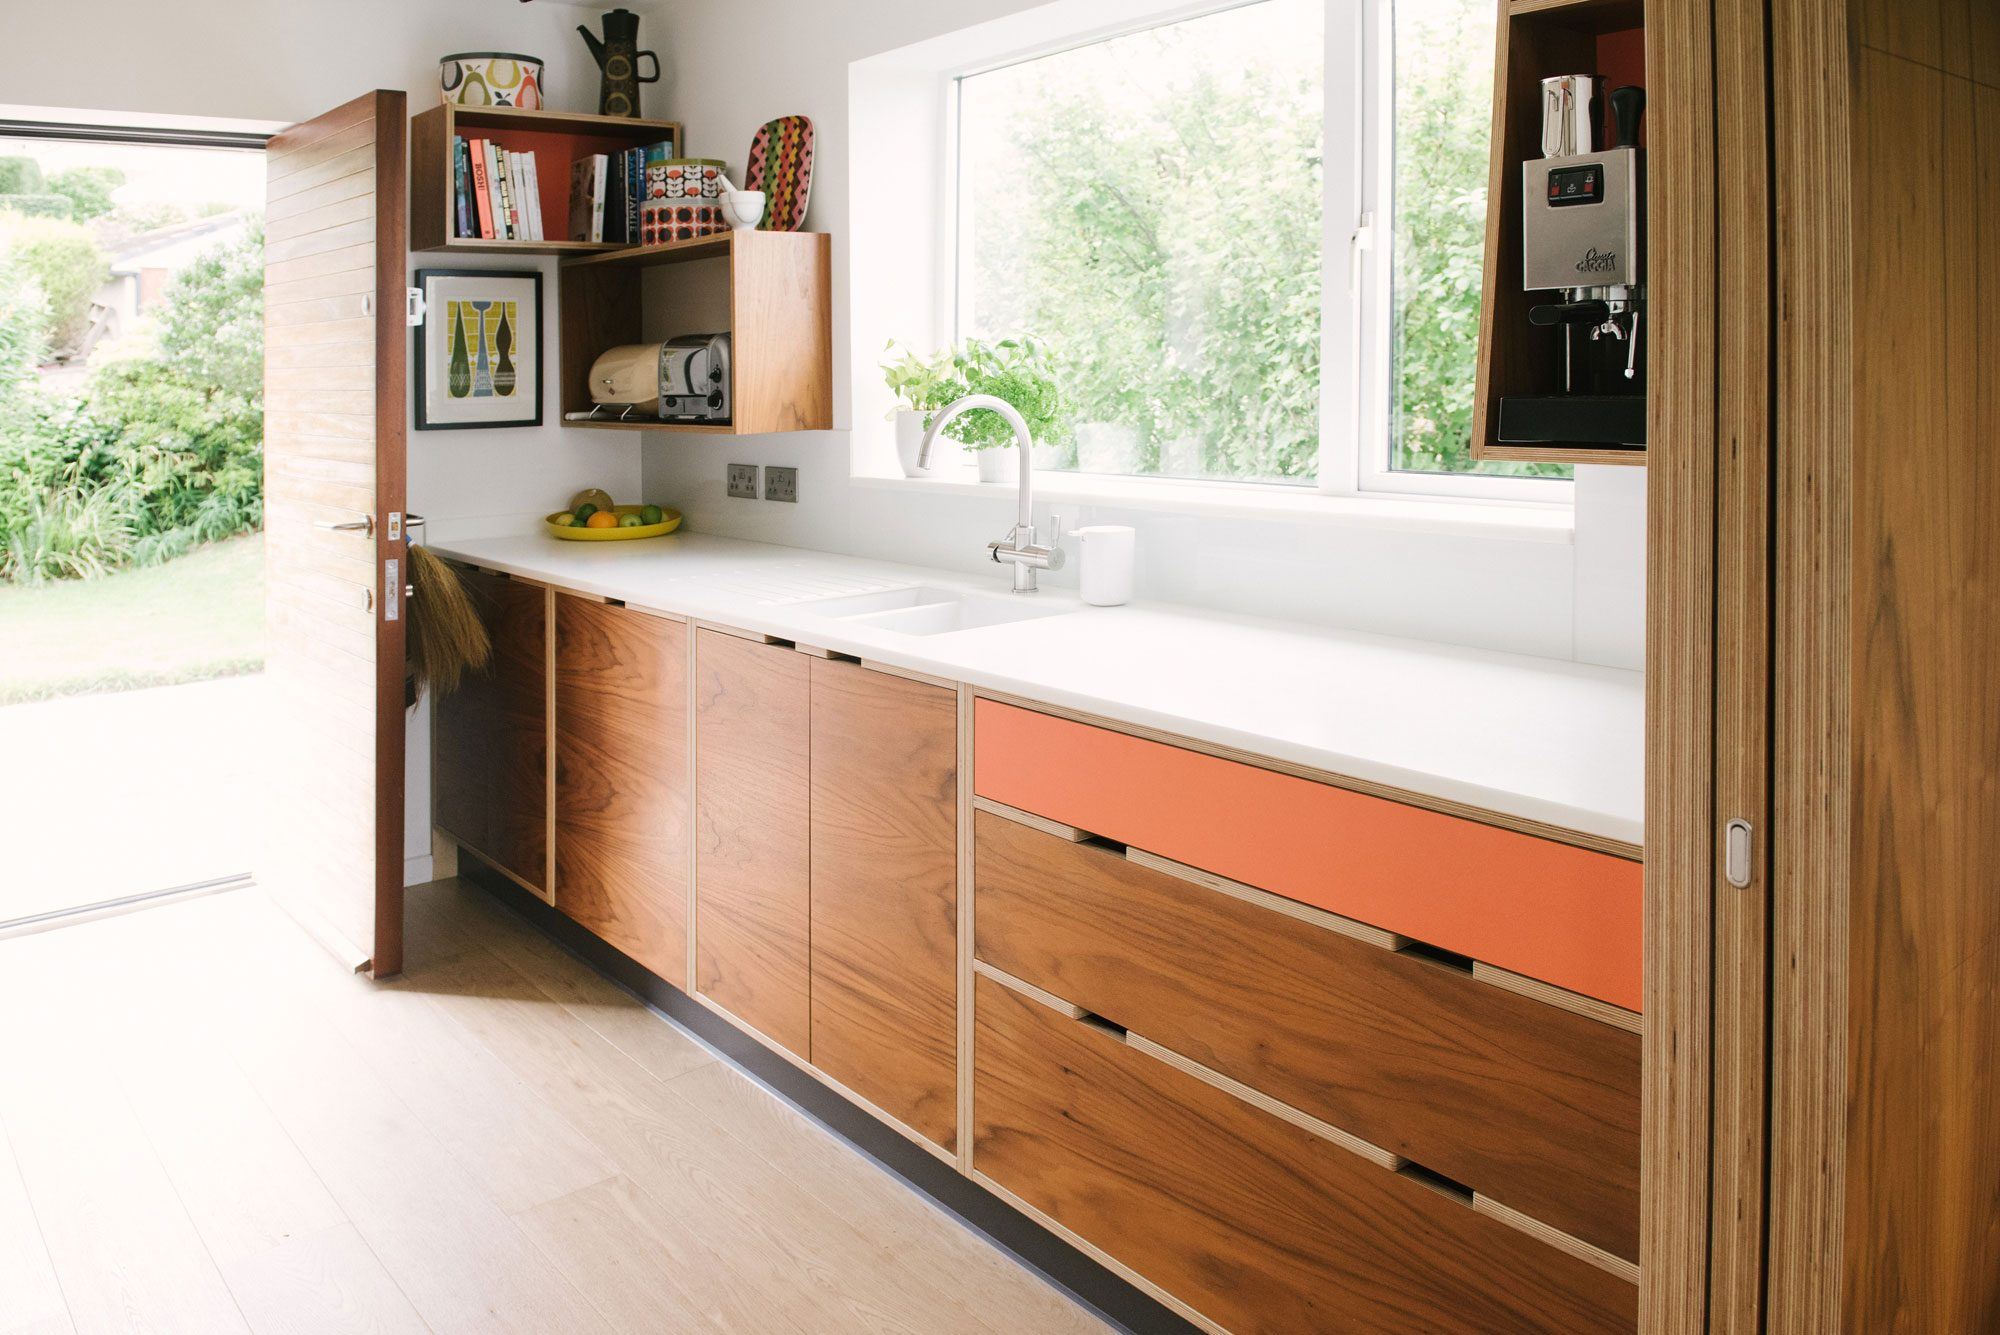 walnut and orange bespoke kitchen